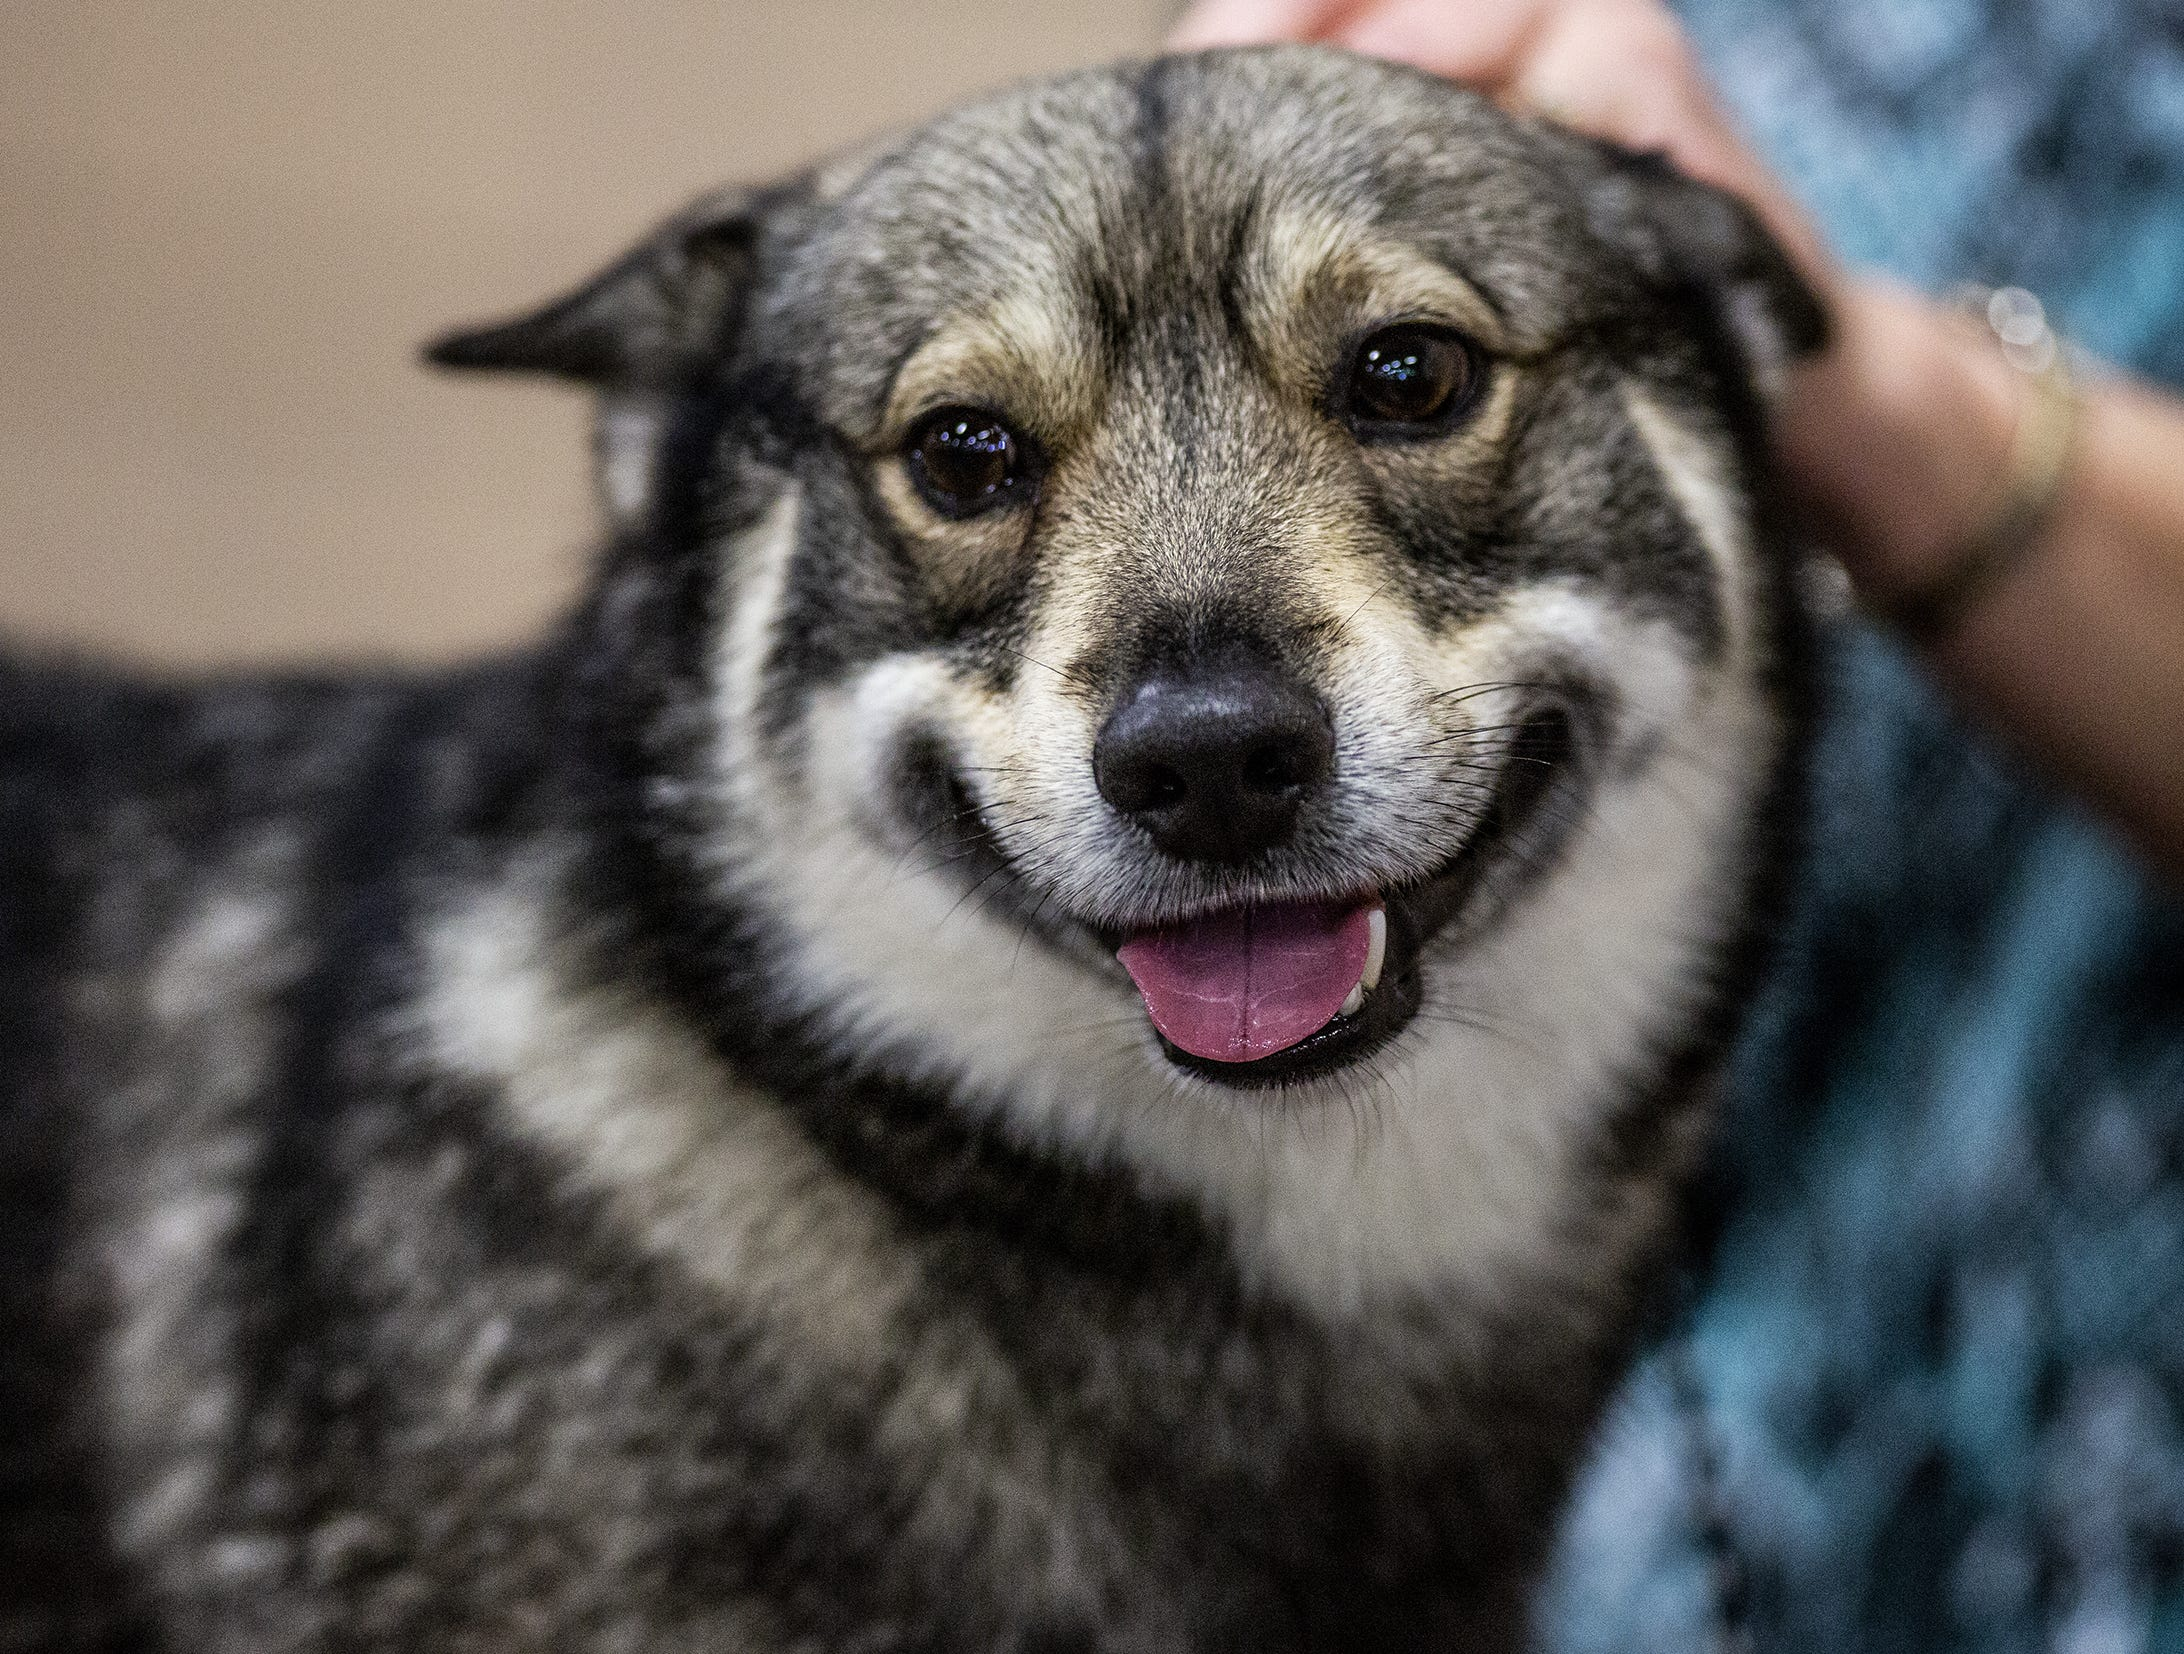 Grayson, a Swedish vallhund, enjoys being groomed at the 2019 Kentuckiana Cluster of Dog Shows at the Kentucky Exposition Center. March 14, 2019.